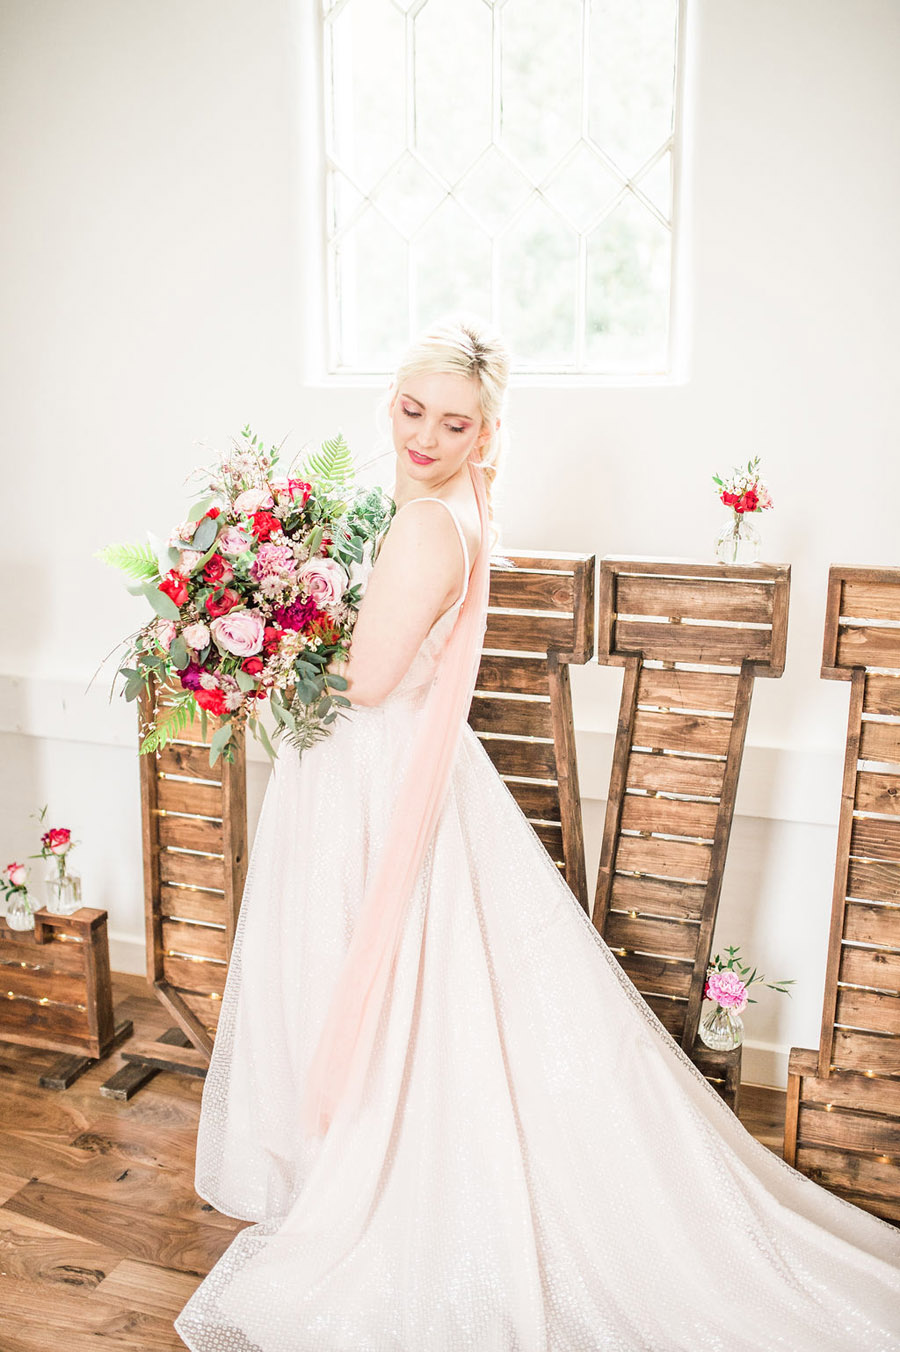 Modern luxe wedding style ideas with images by Laura Jane Photography (10)